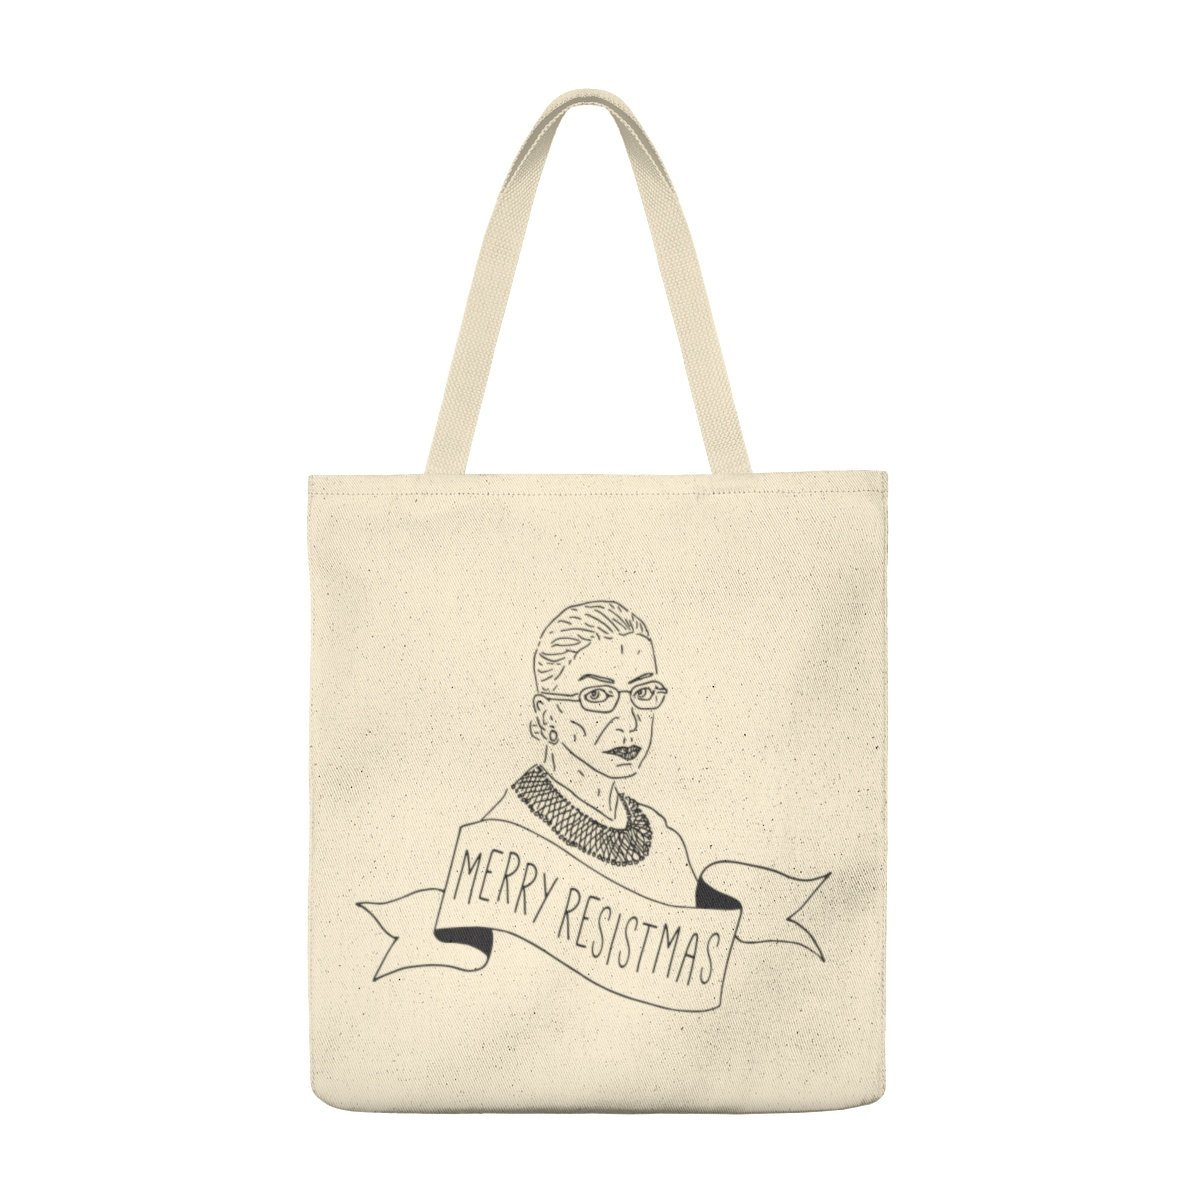 Cool affordable gifts under $15: RBG Resist Tote